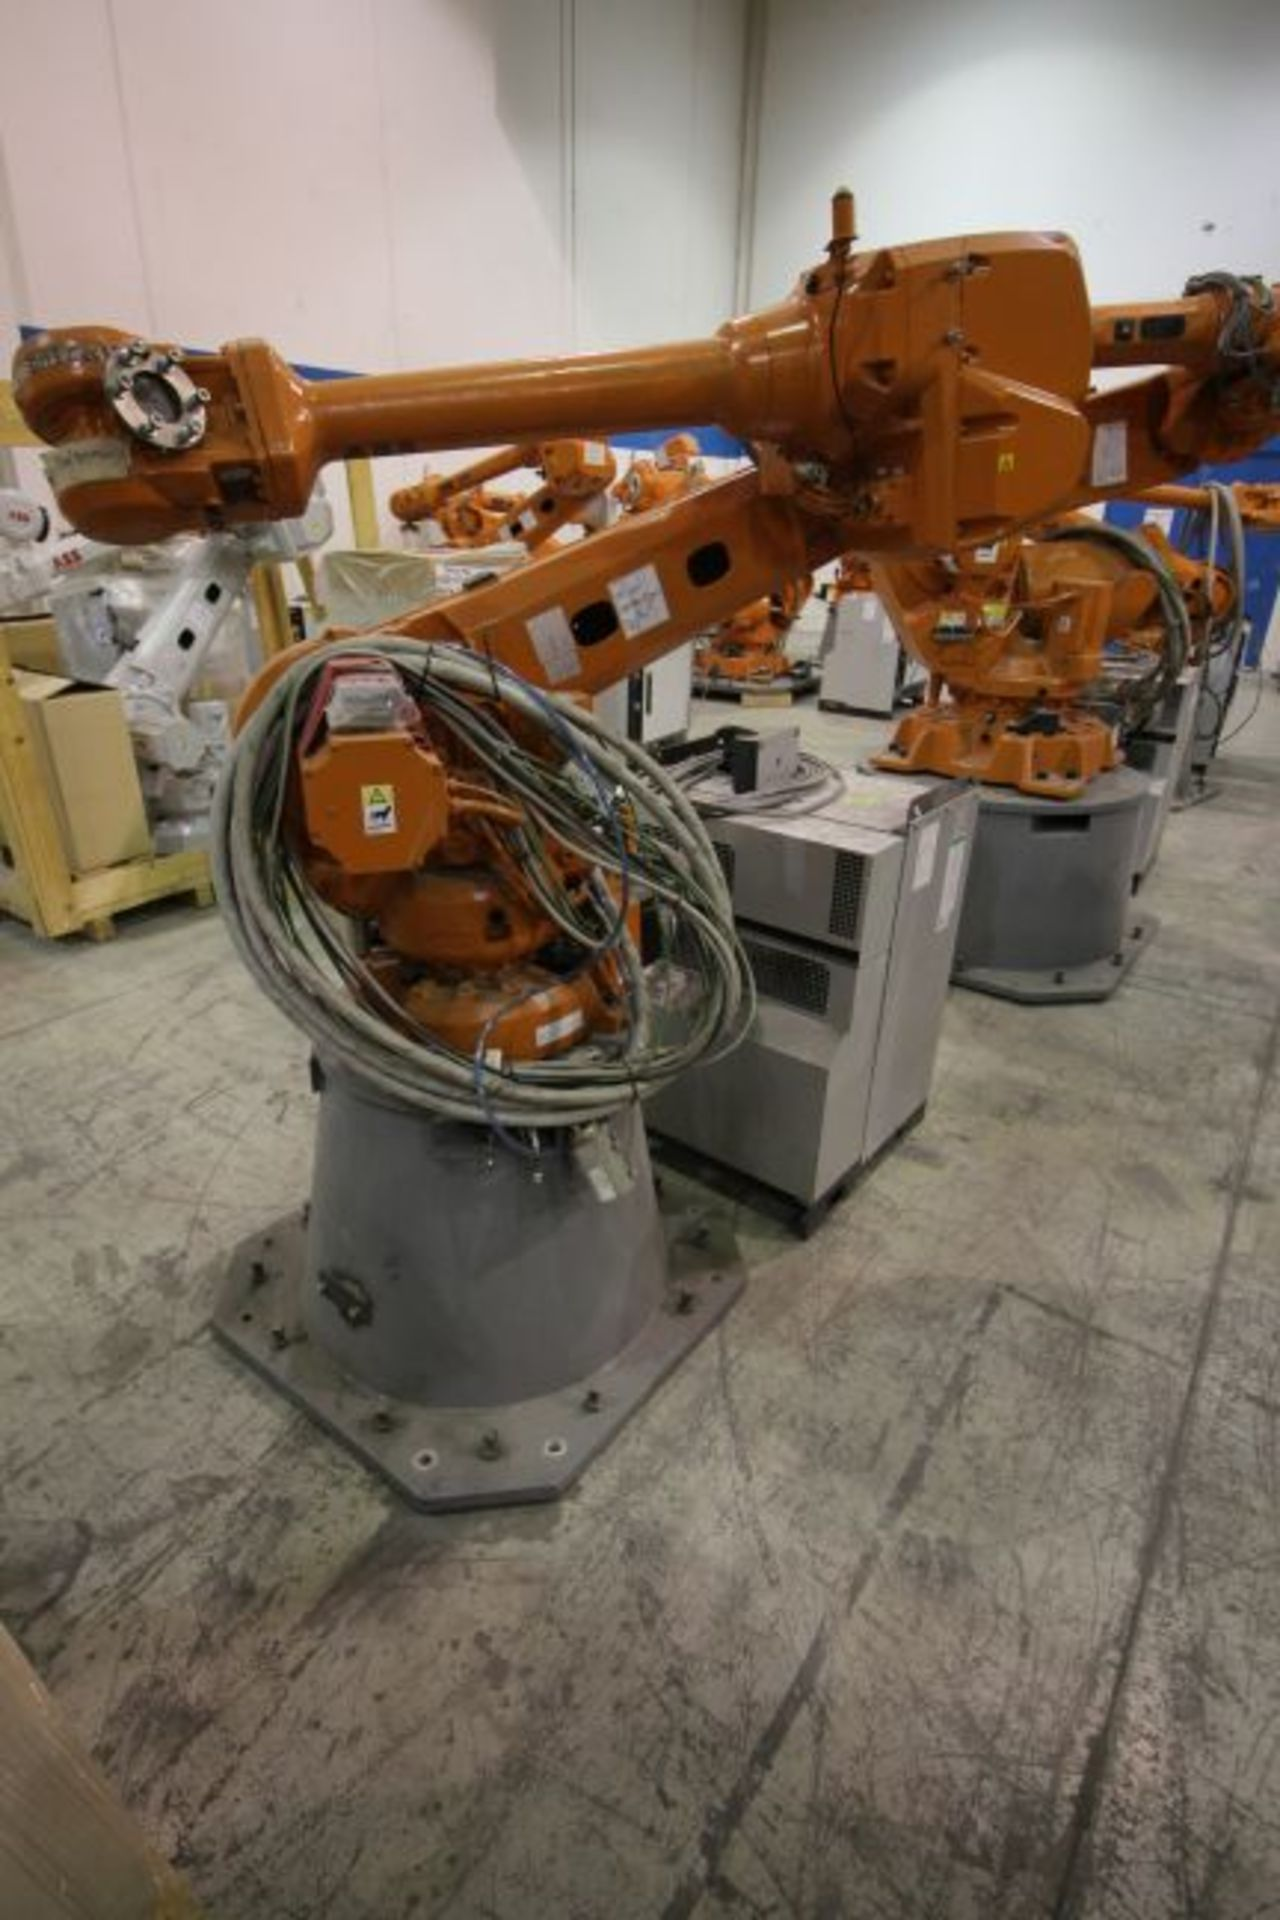 ABB ROBOT IRB 4600 2.55/40KG WITH IRC5 CONTROLS, YEAR 2014, SN 500869TEACH PENDANT& CABLES - Image 2 of 9